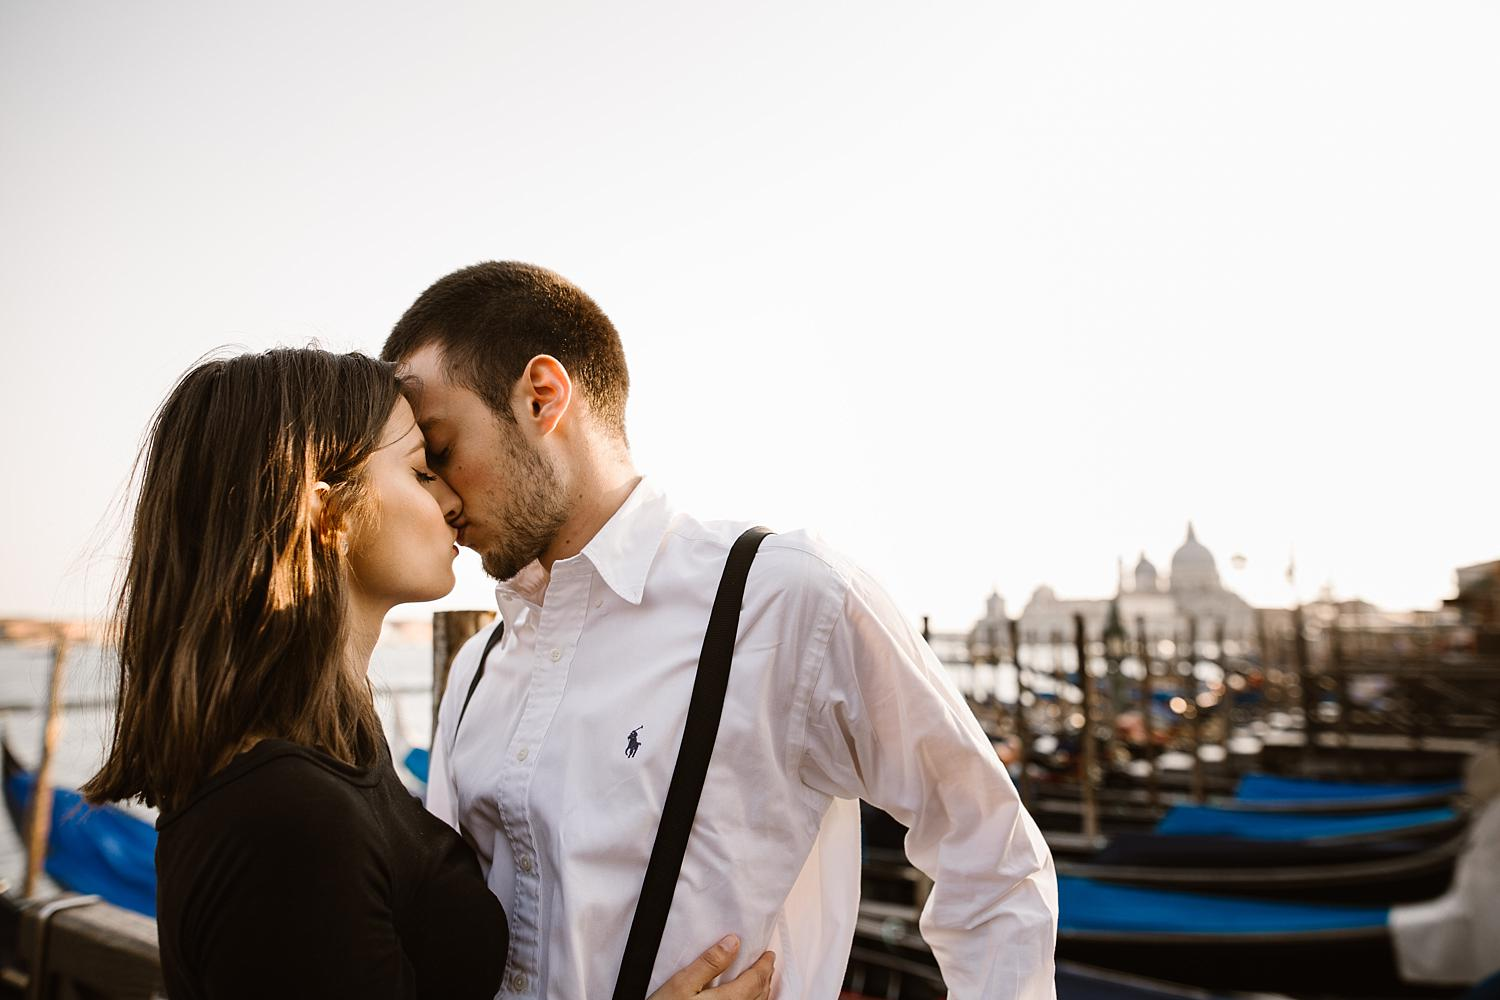 GL 86 - Giulia & Leonardo - An Intimate Shooting in Venice